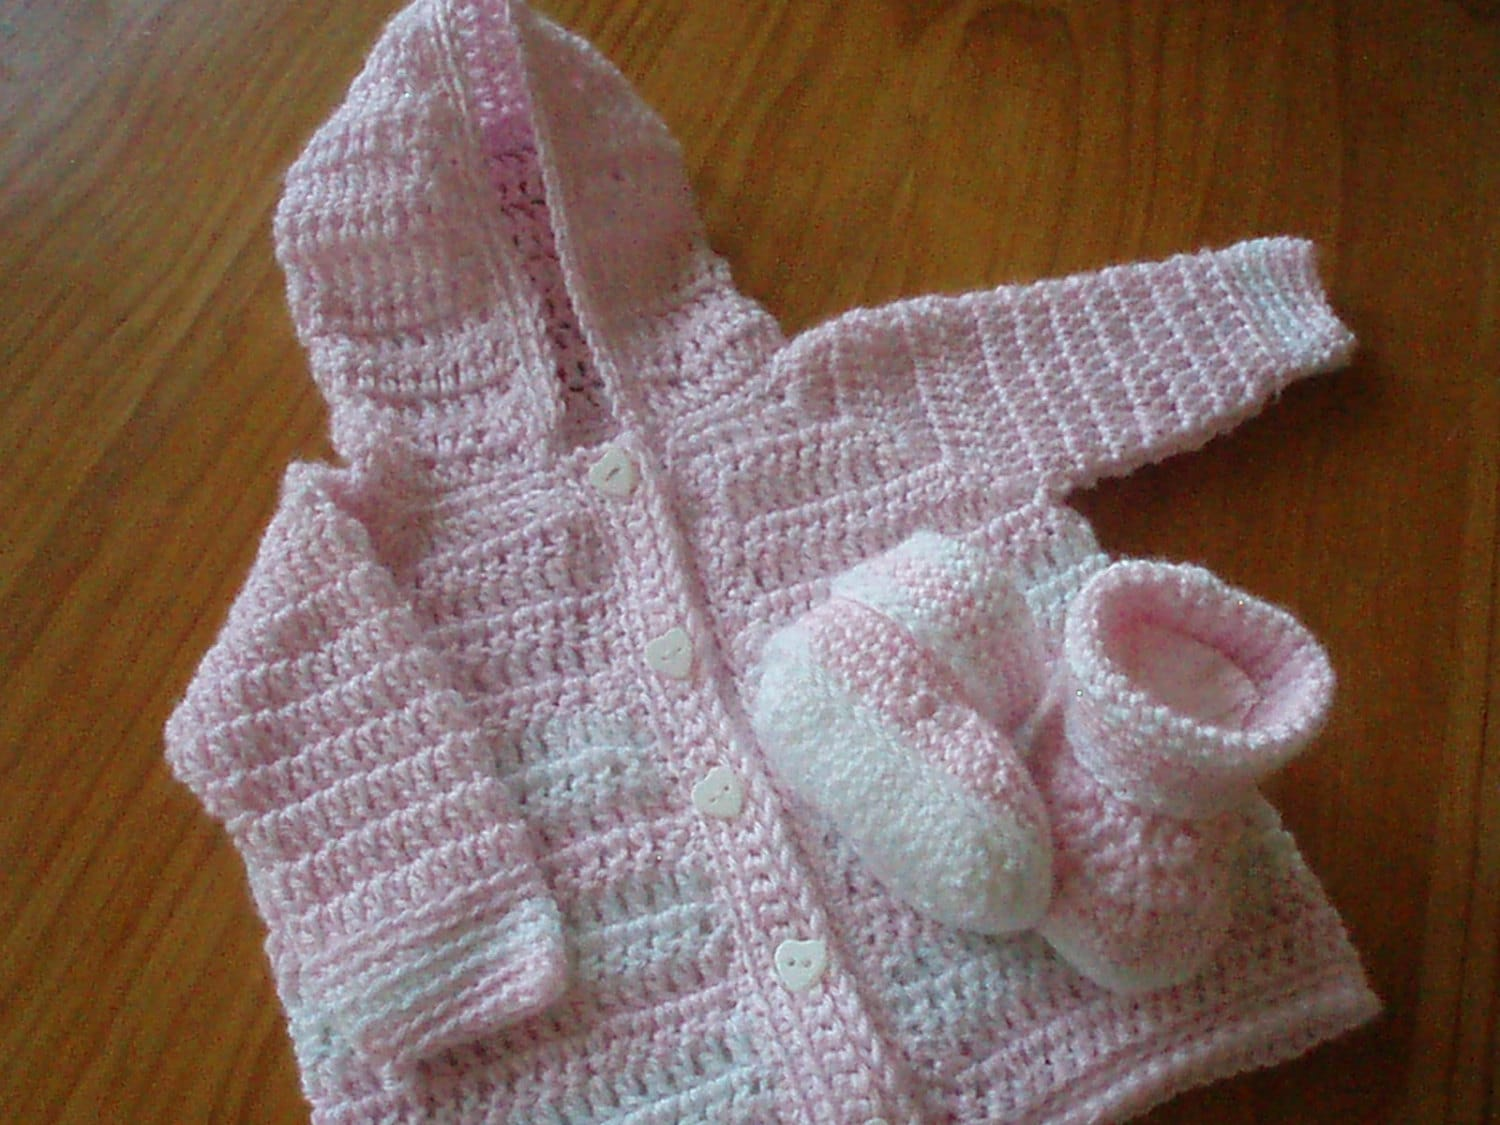 Crochet Pattern for Baby Hooded Sweater and Booties Hooded